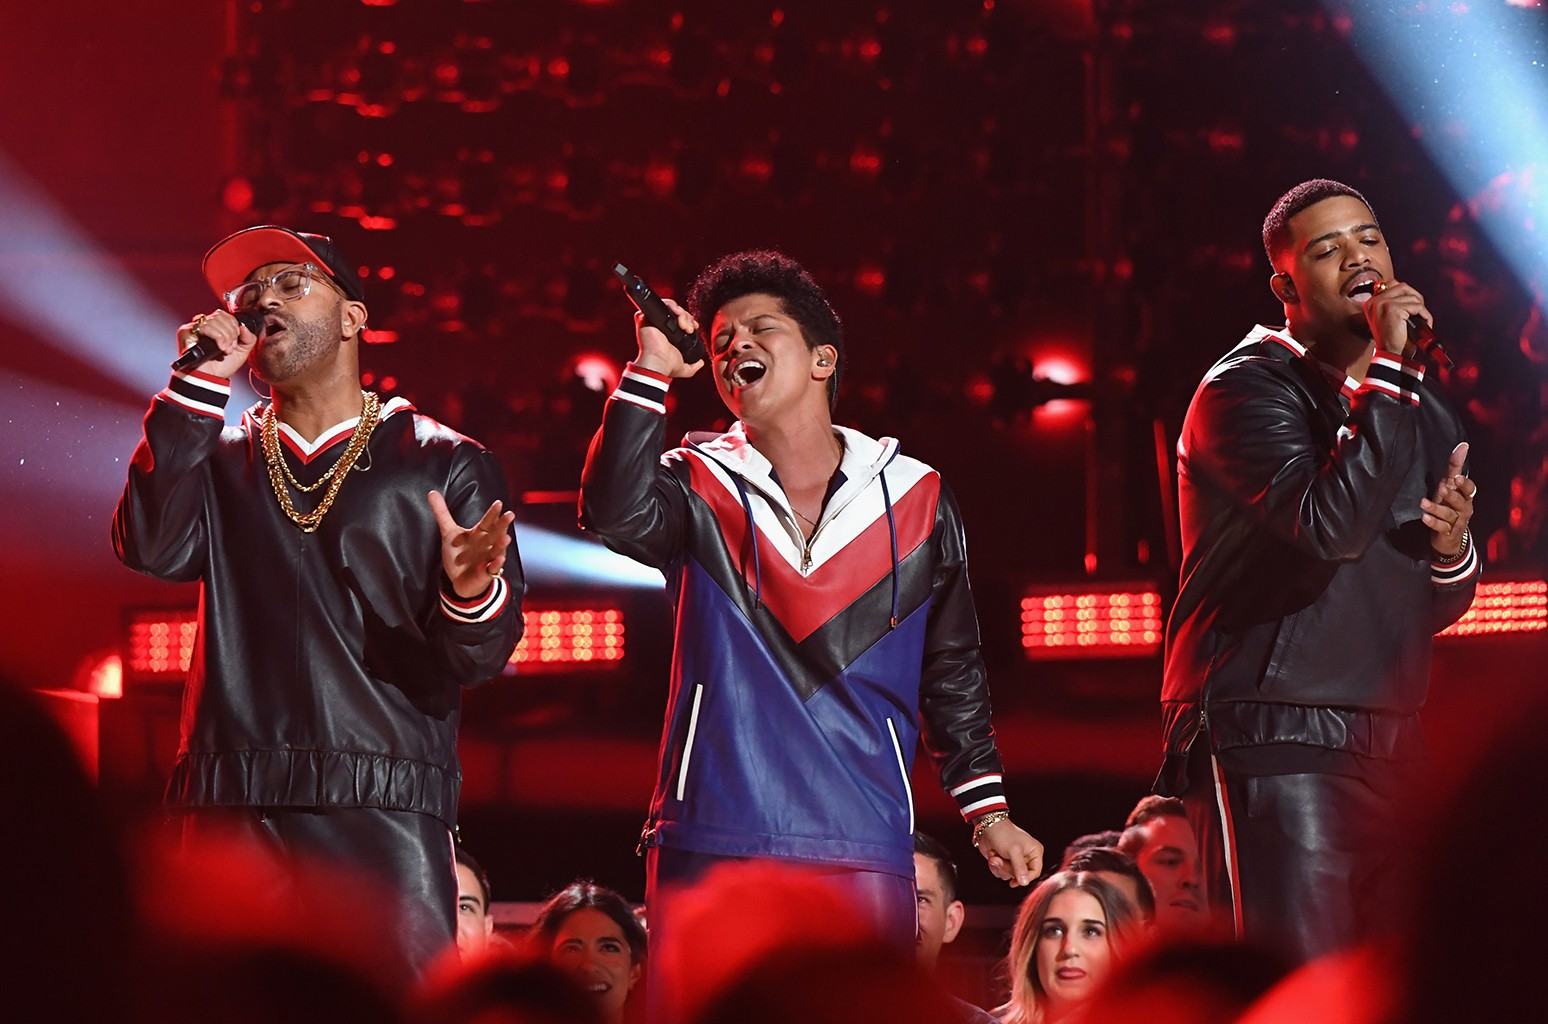 Bruno Mars performs onstage during The 59th Grammy Awards at Staples Center on Feb. 12, 2017 in Los Angeles.